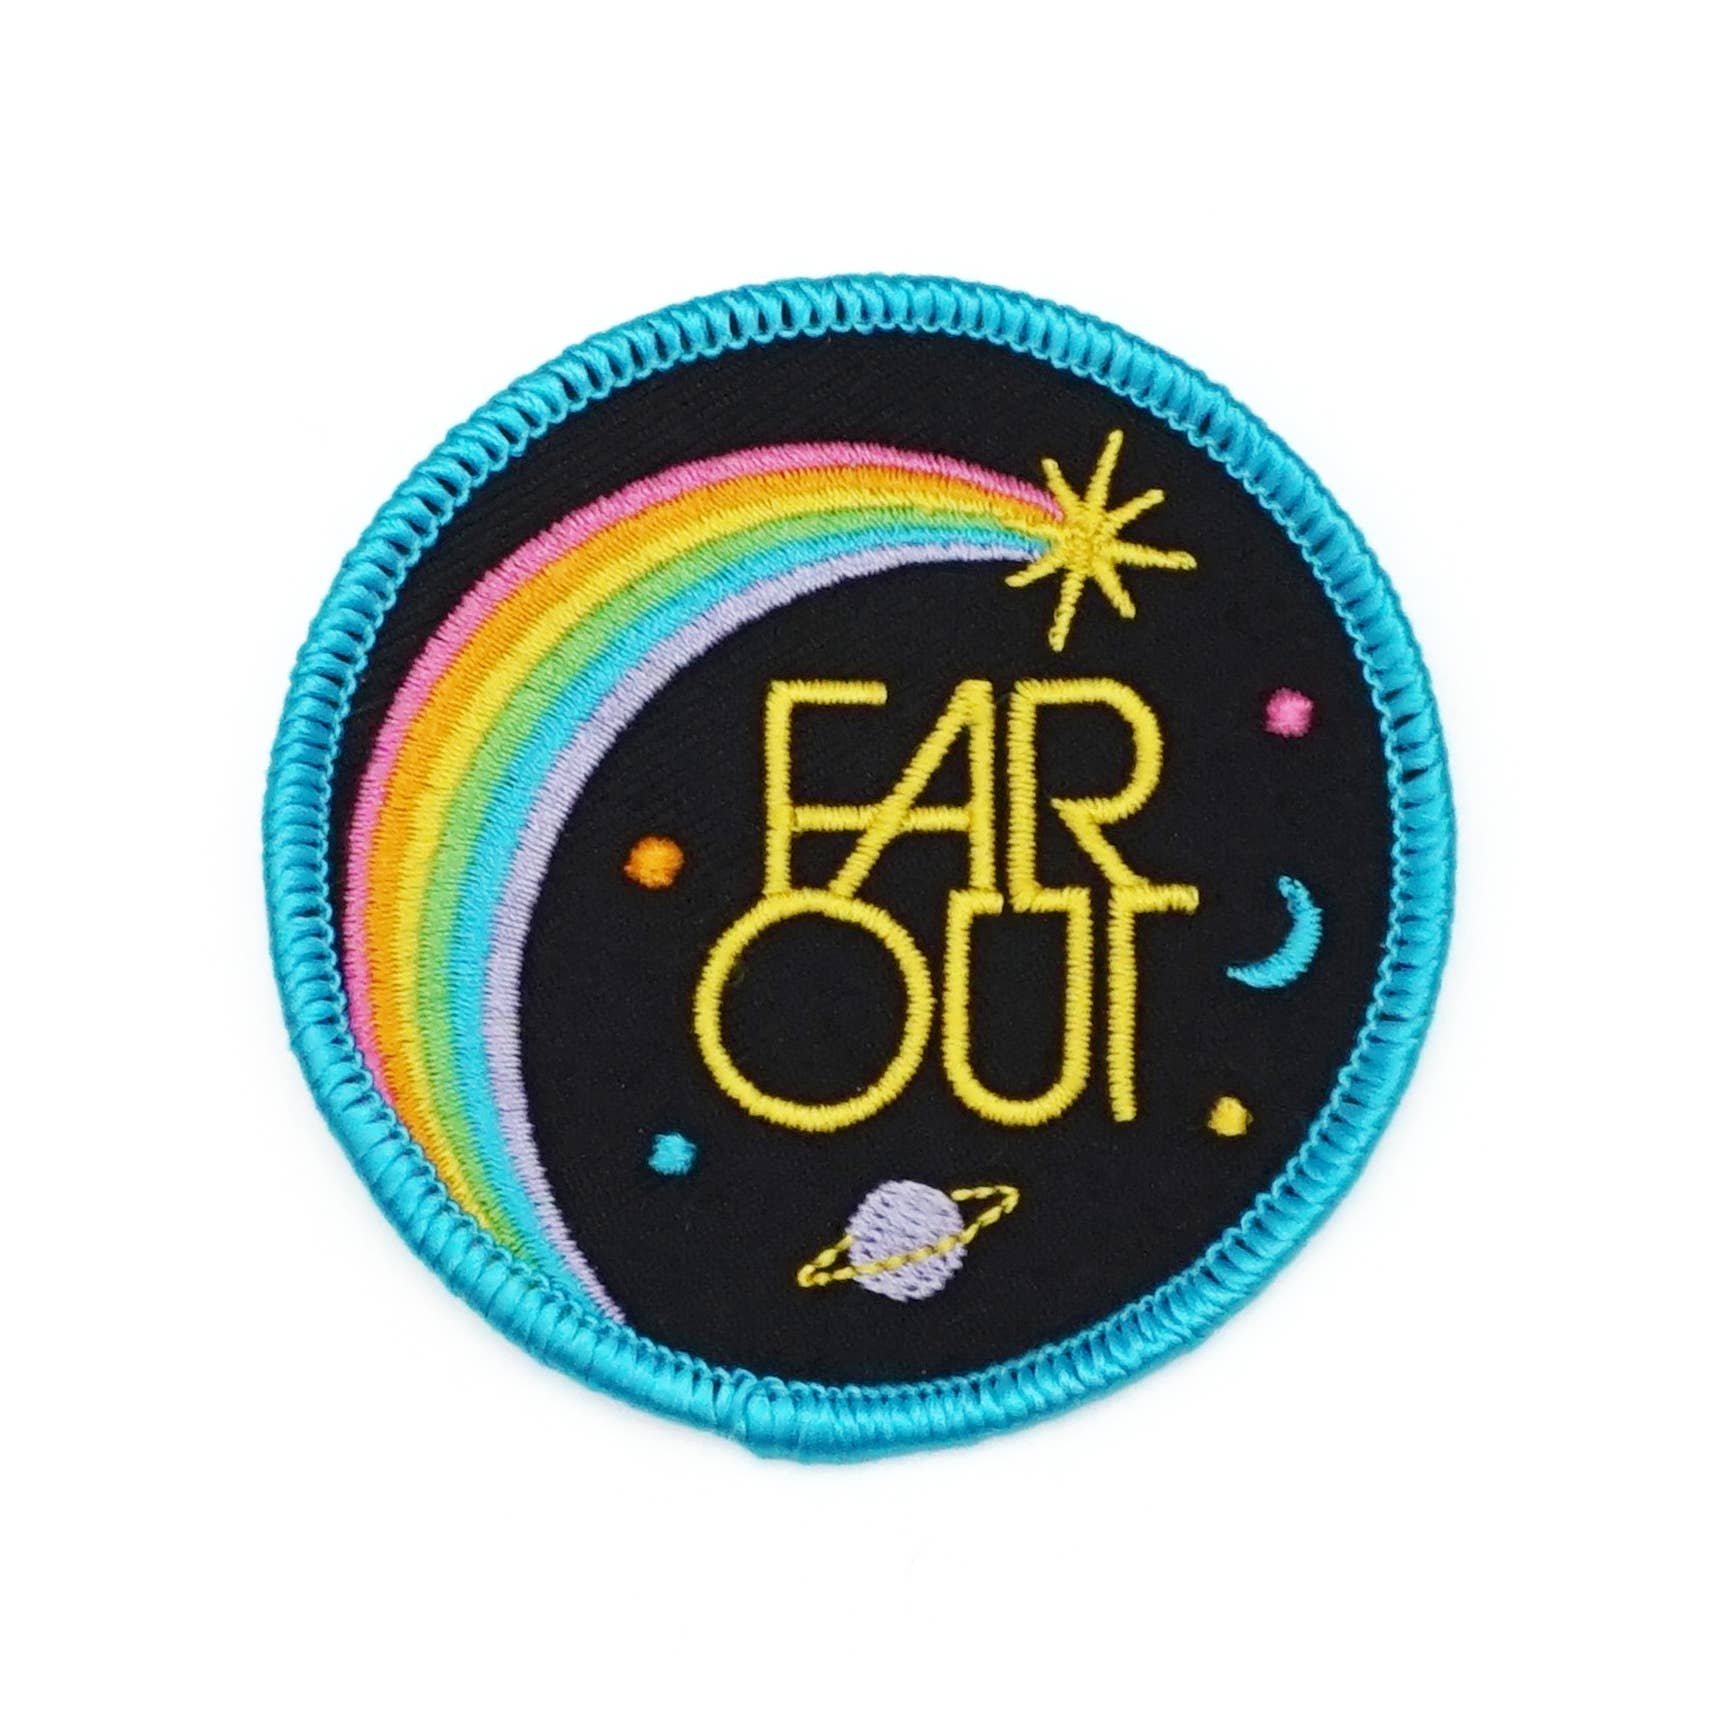 Far Out Embroidered Iron-on Patch